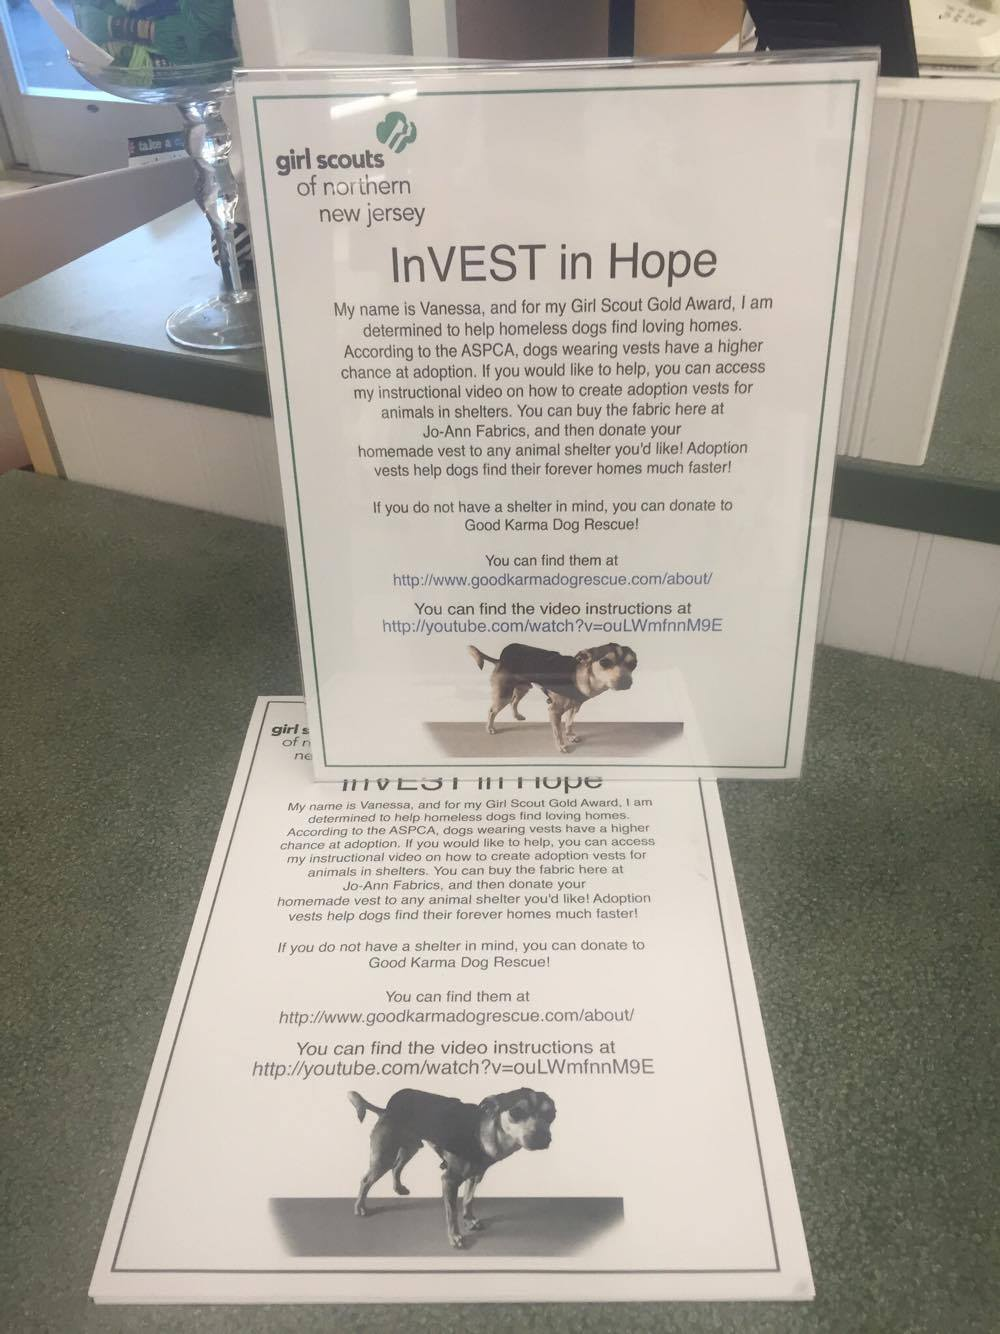 InVEST in Hope